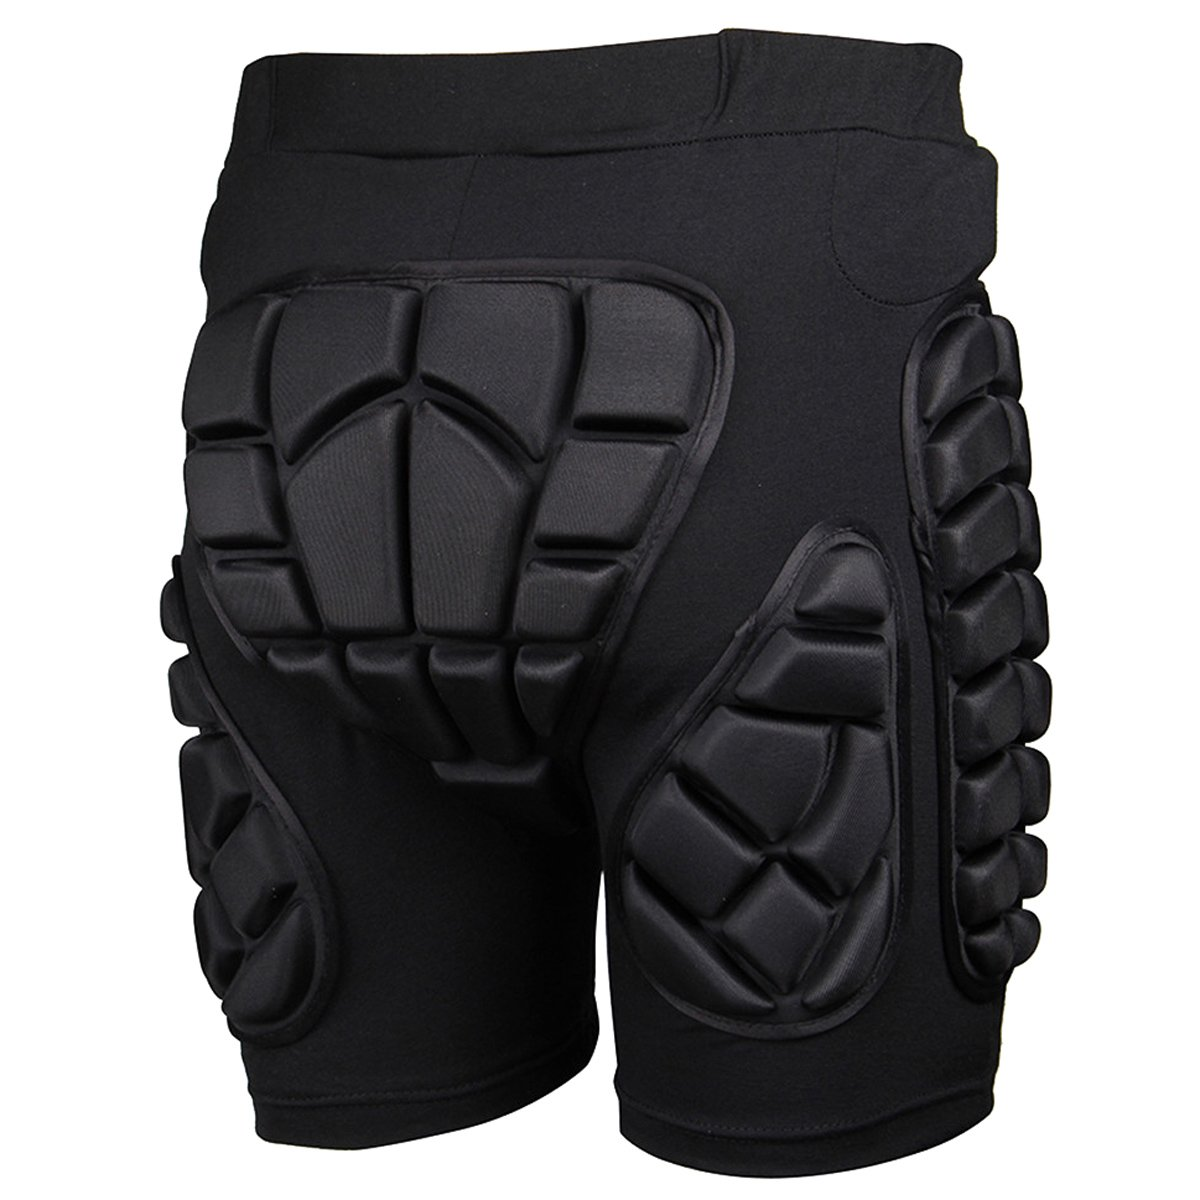 3D Protective Pads Compressin Shorts Hips Butt Protection for Ski Skiing Skating Snowboard Cycling, Fits for Kids / Teens / Adults